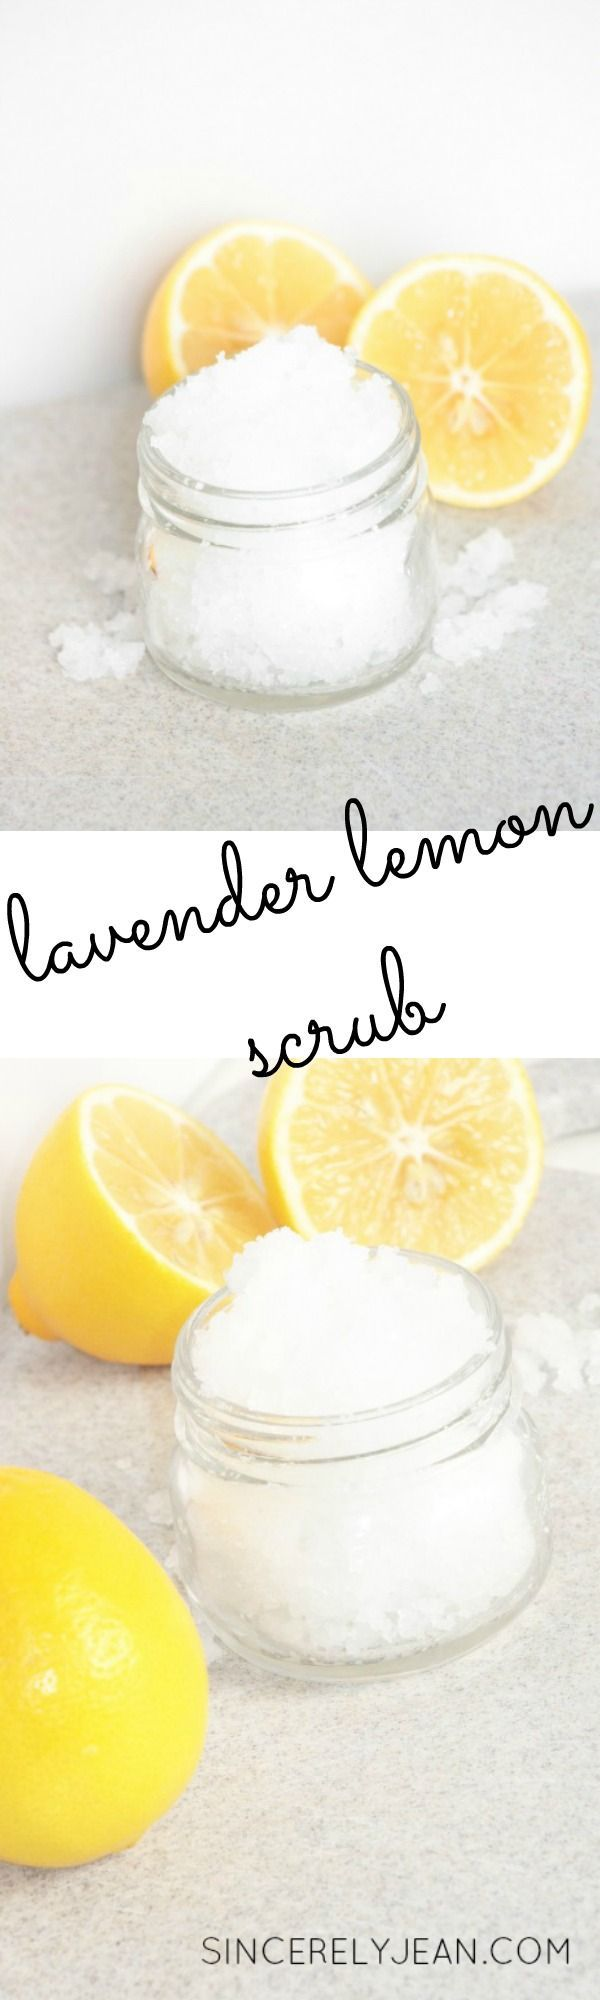 Lavender Lemon Salt Scrub - Step by step tutorial on how to make your own salt scrub | http://www.sincerelyjean.com